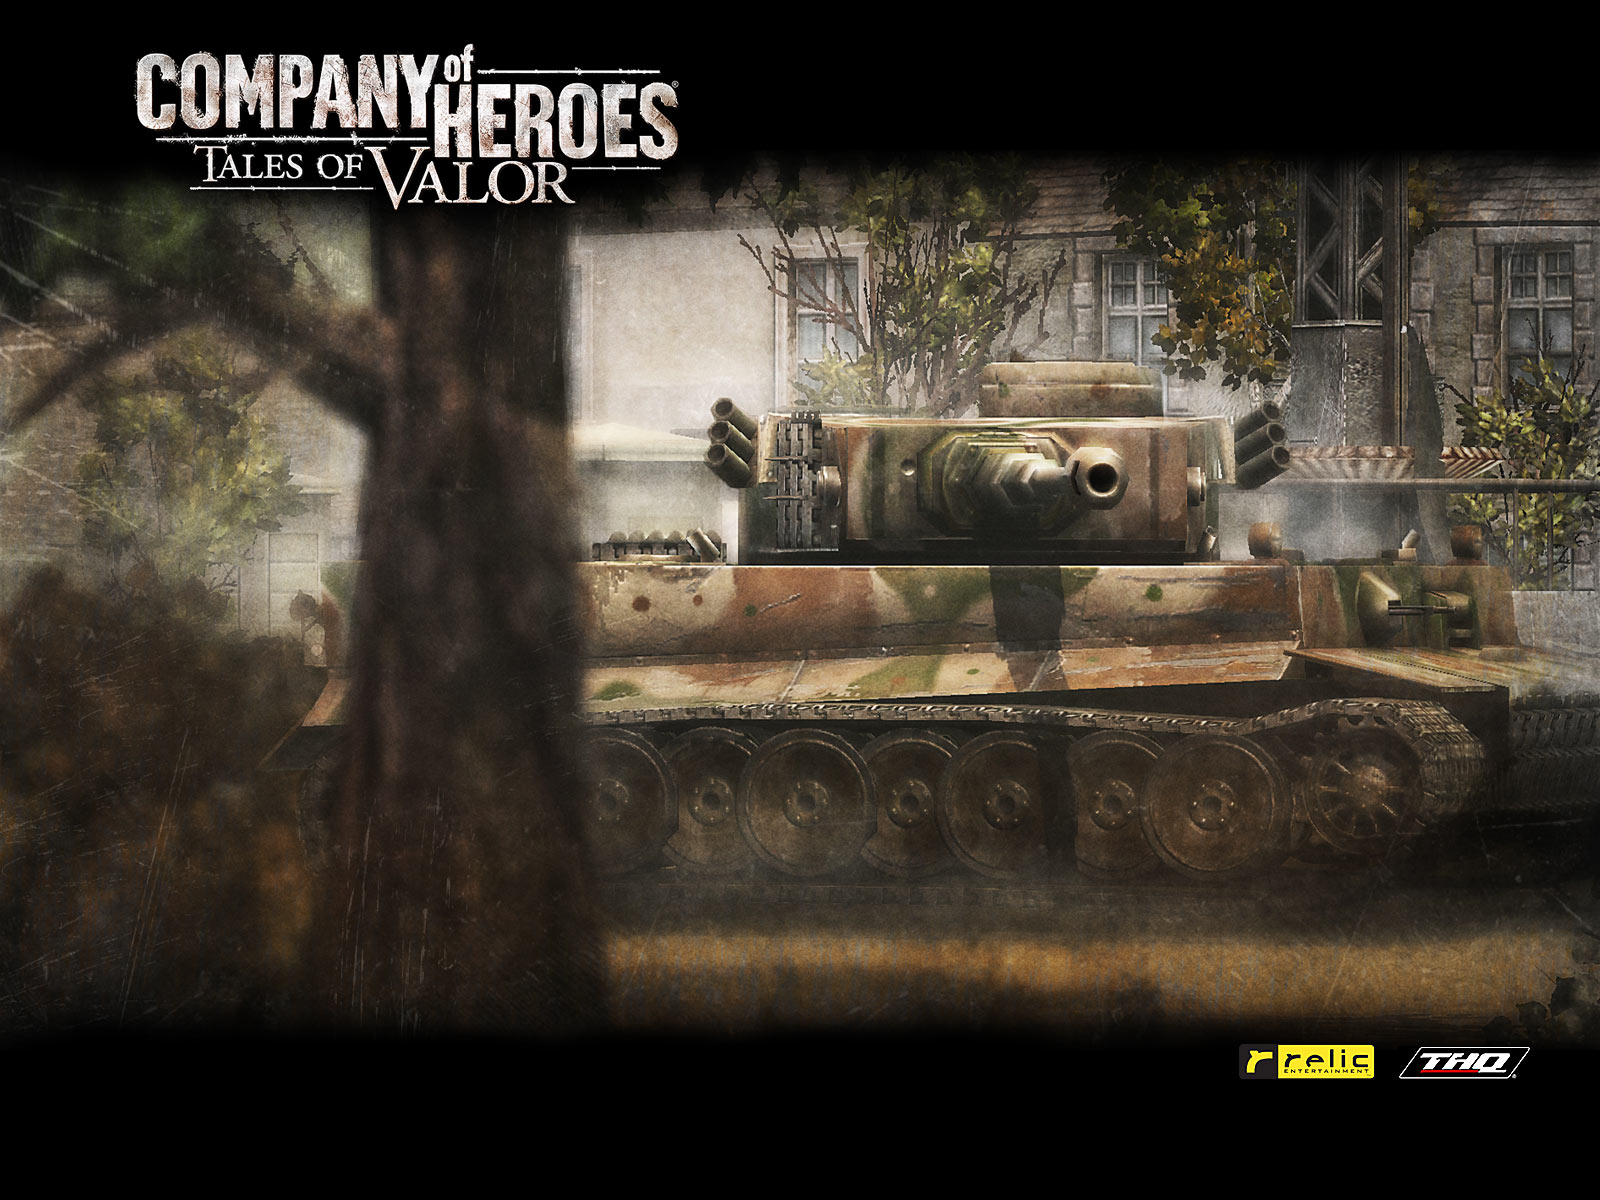 pictures company of heroes games